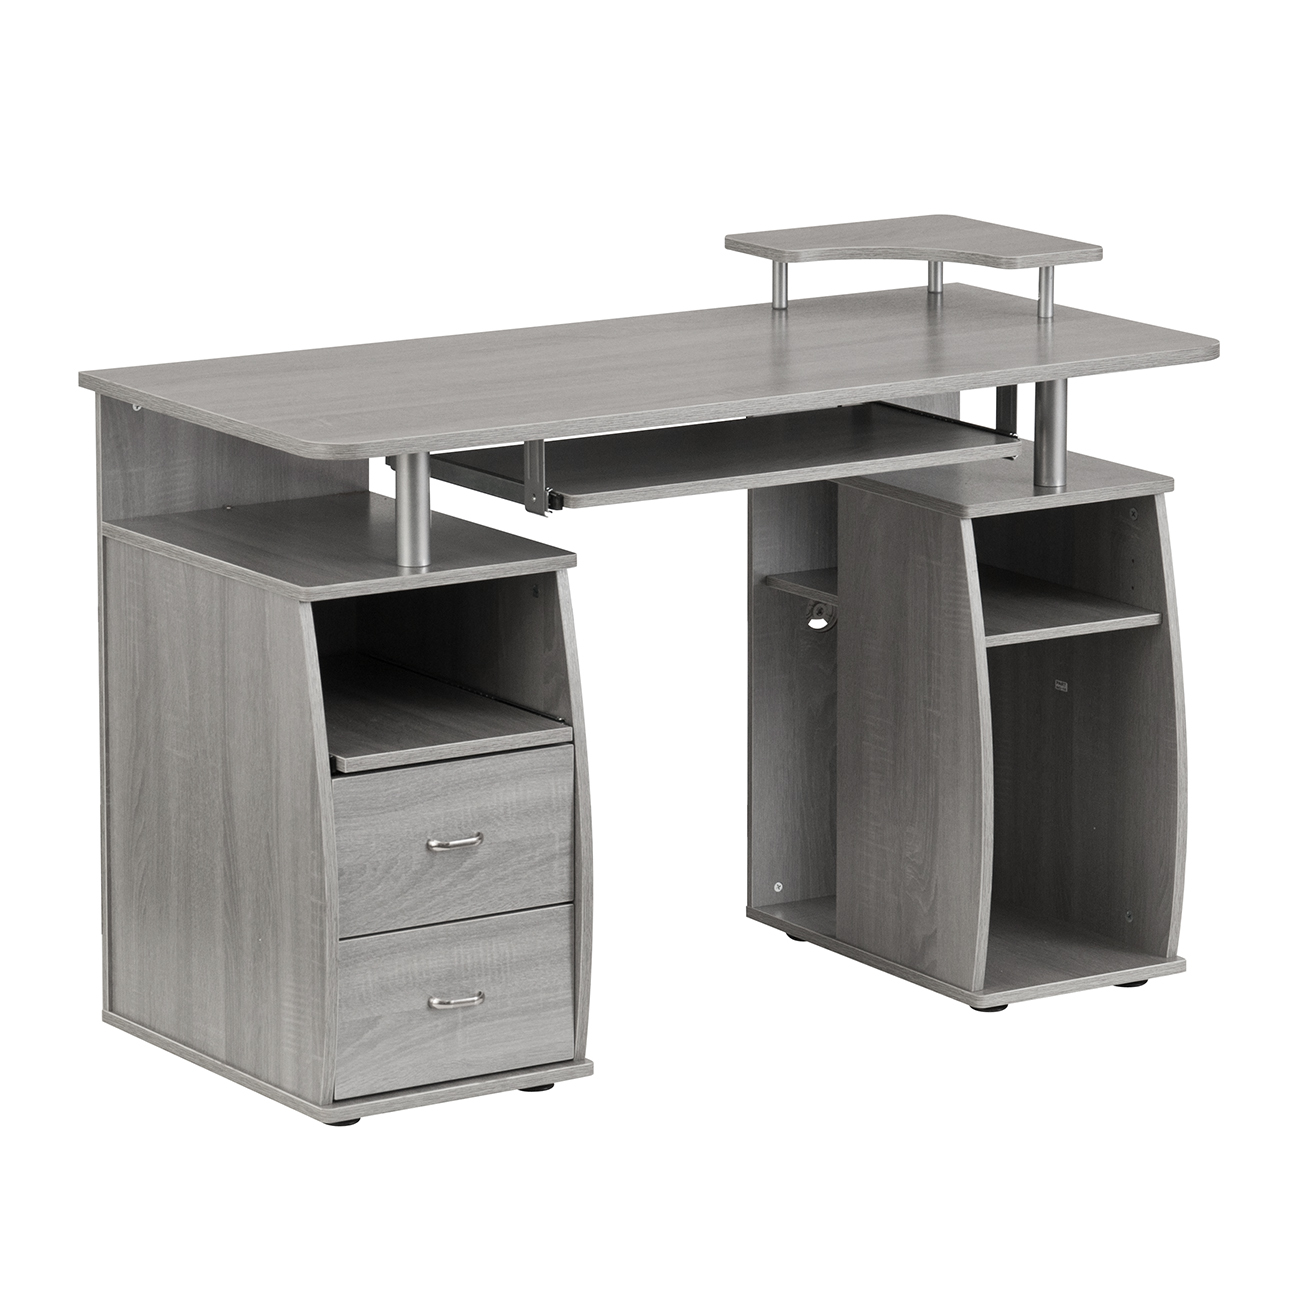 Techni Mobili Complete Computer Workstation Desk With Storage, Grey